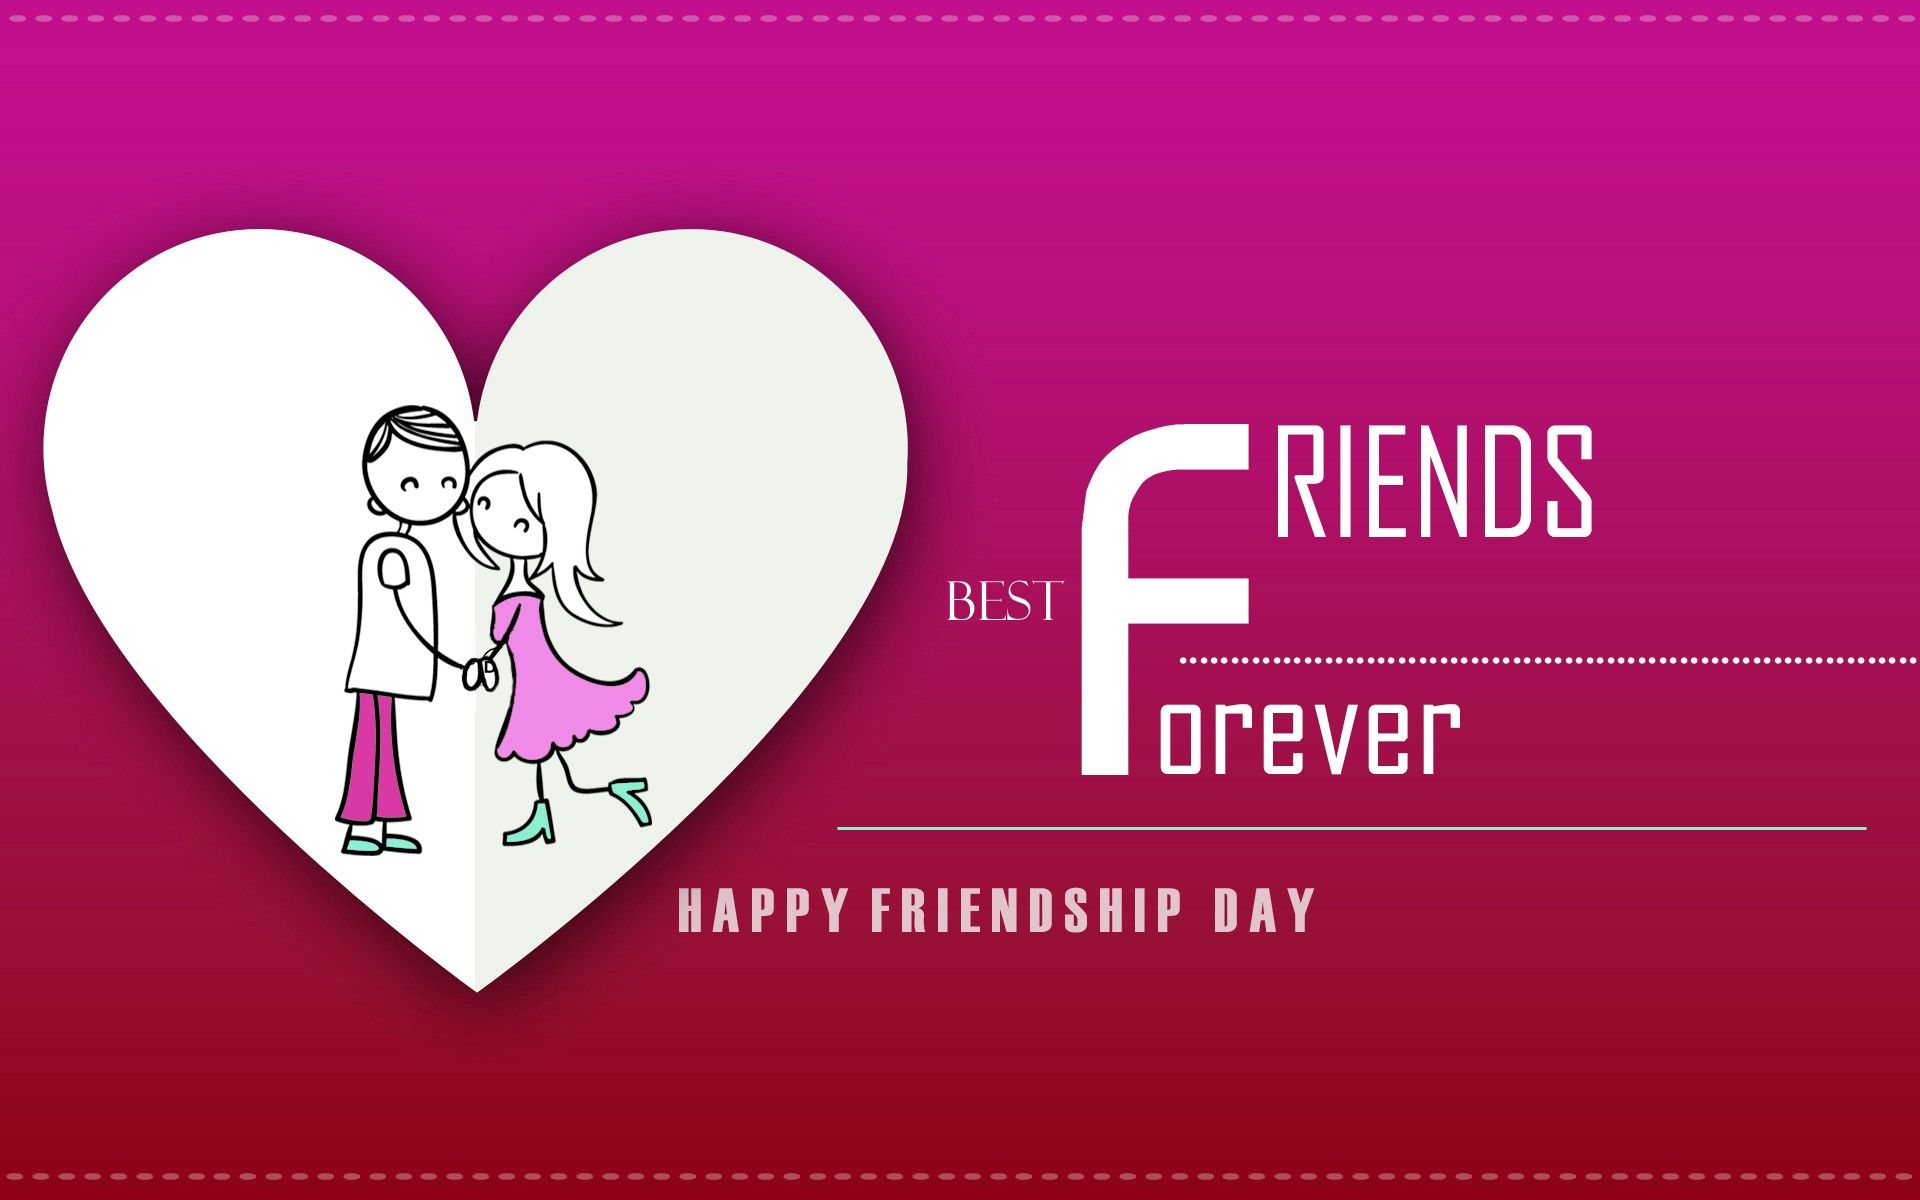 Forever Friendship Day Poem Heart Design Happy Friendship Day